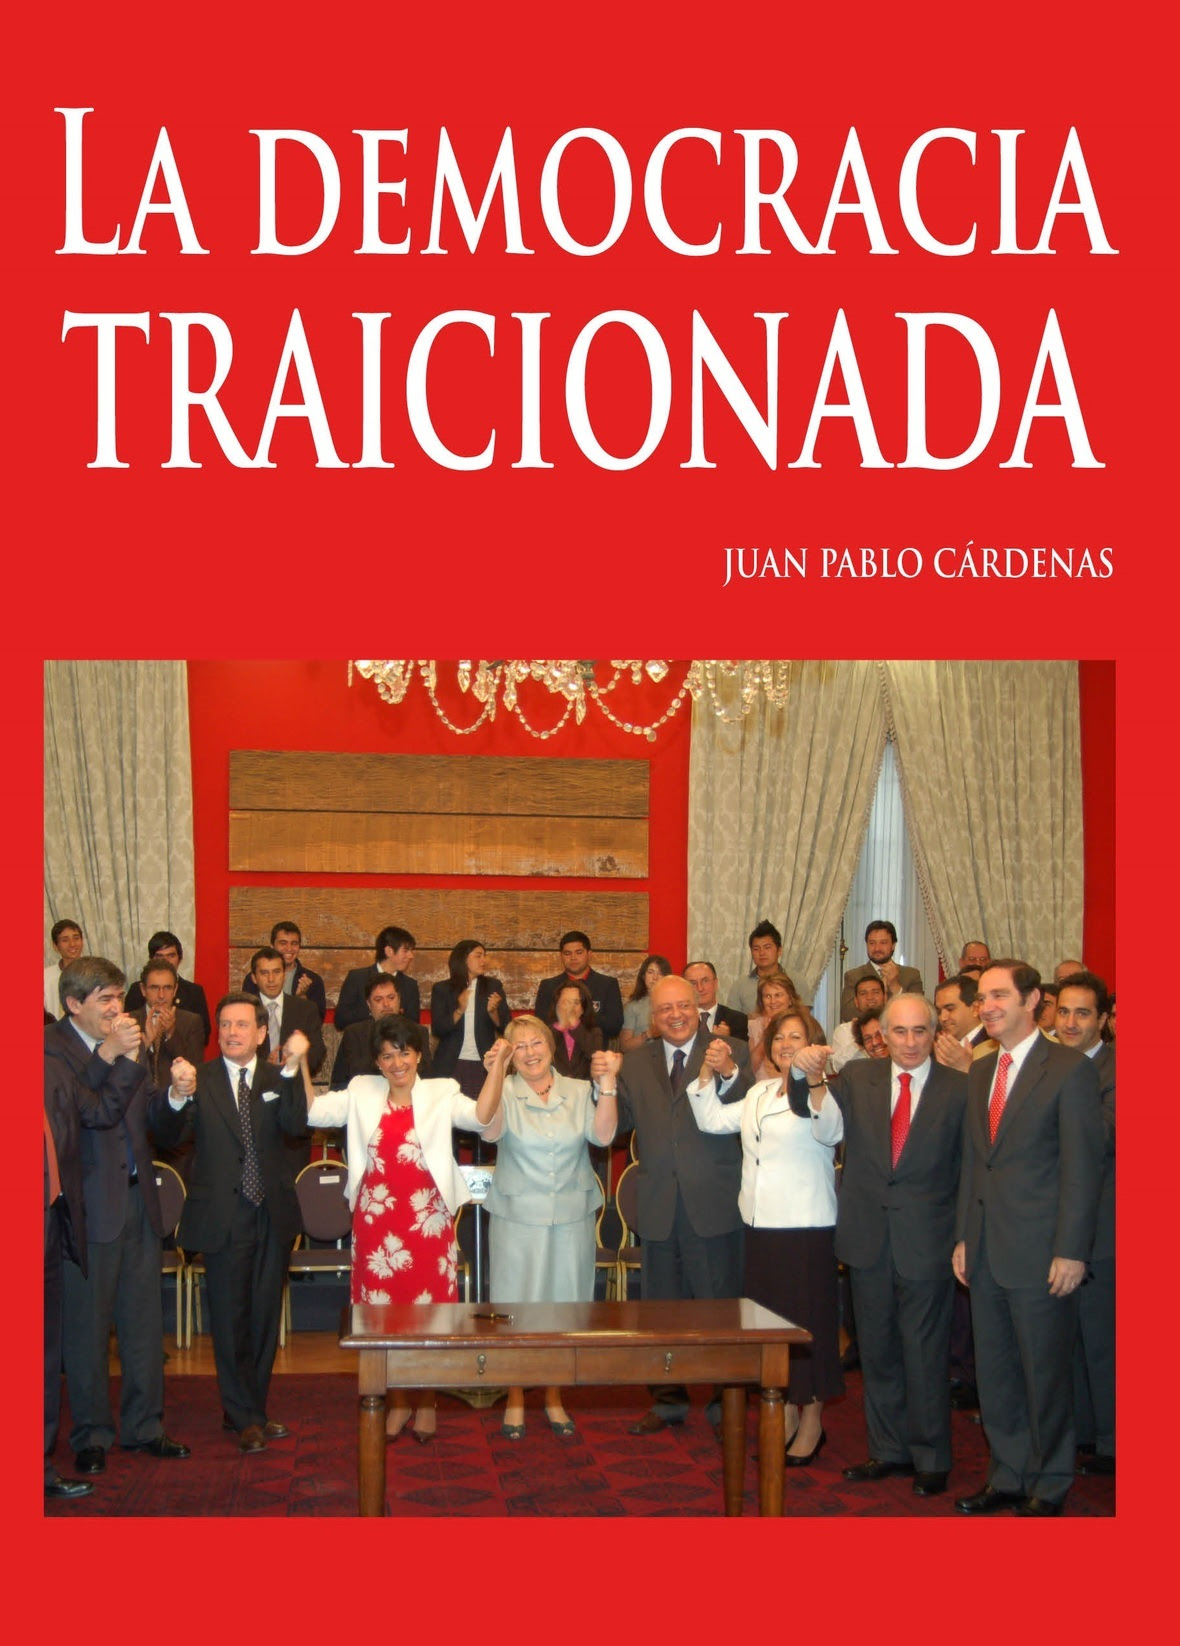 La-democracia-traicionada